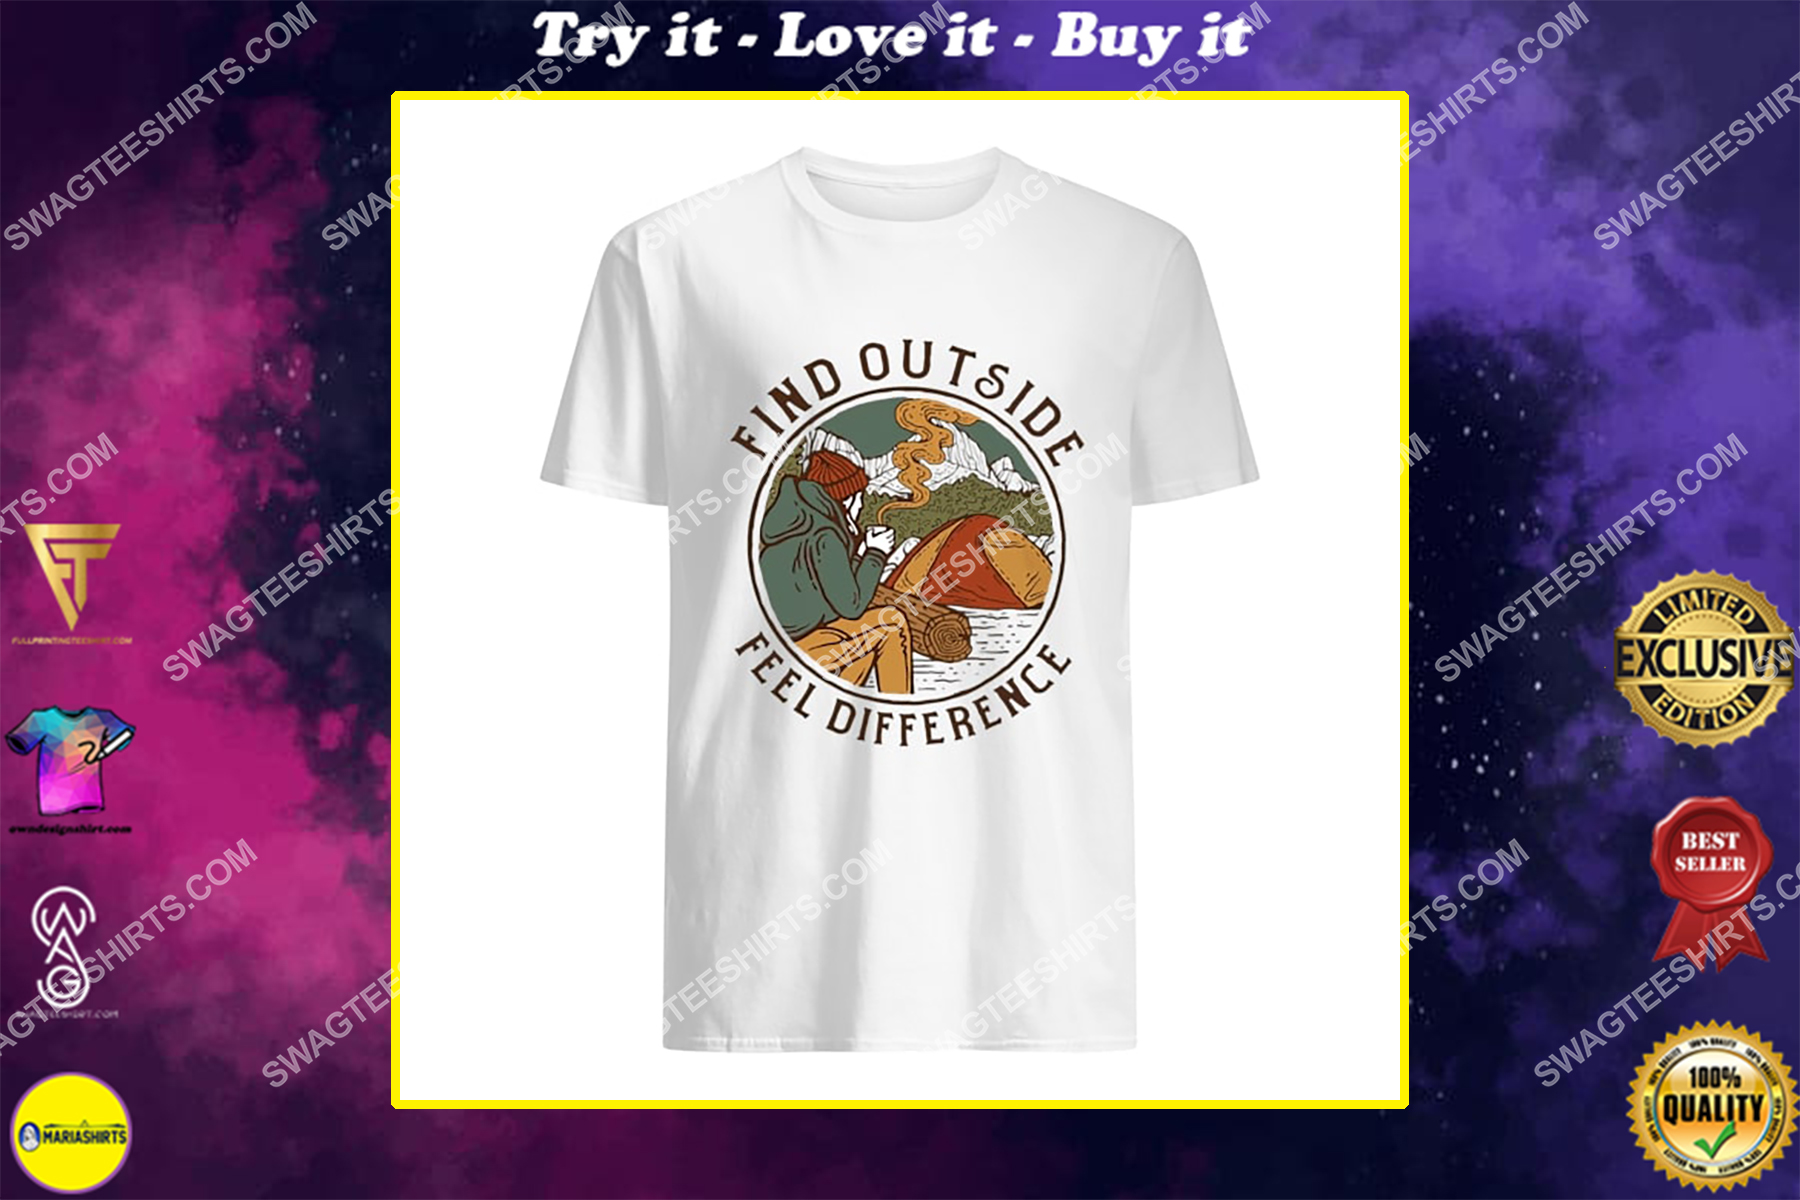 find outside feel difference for camping shirt